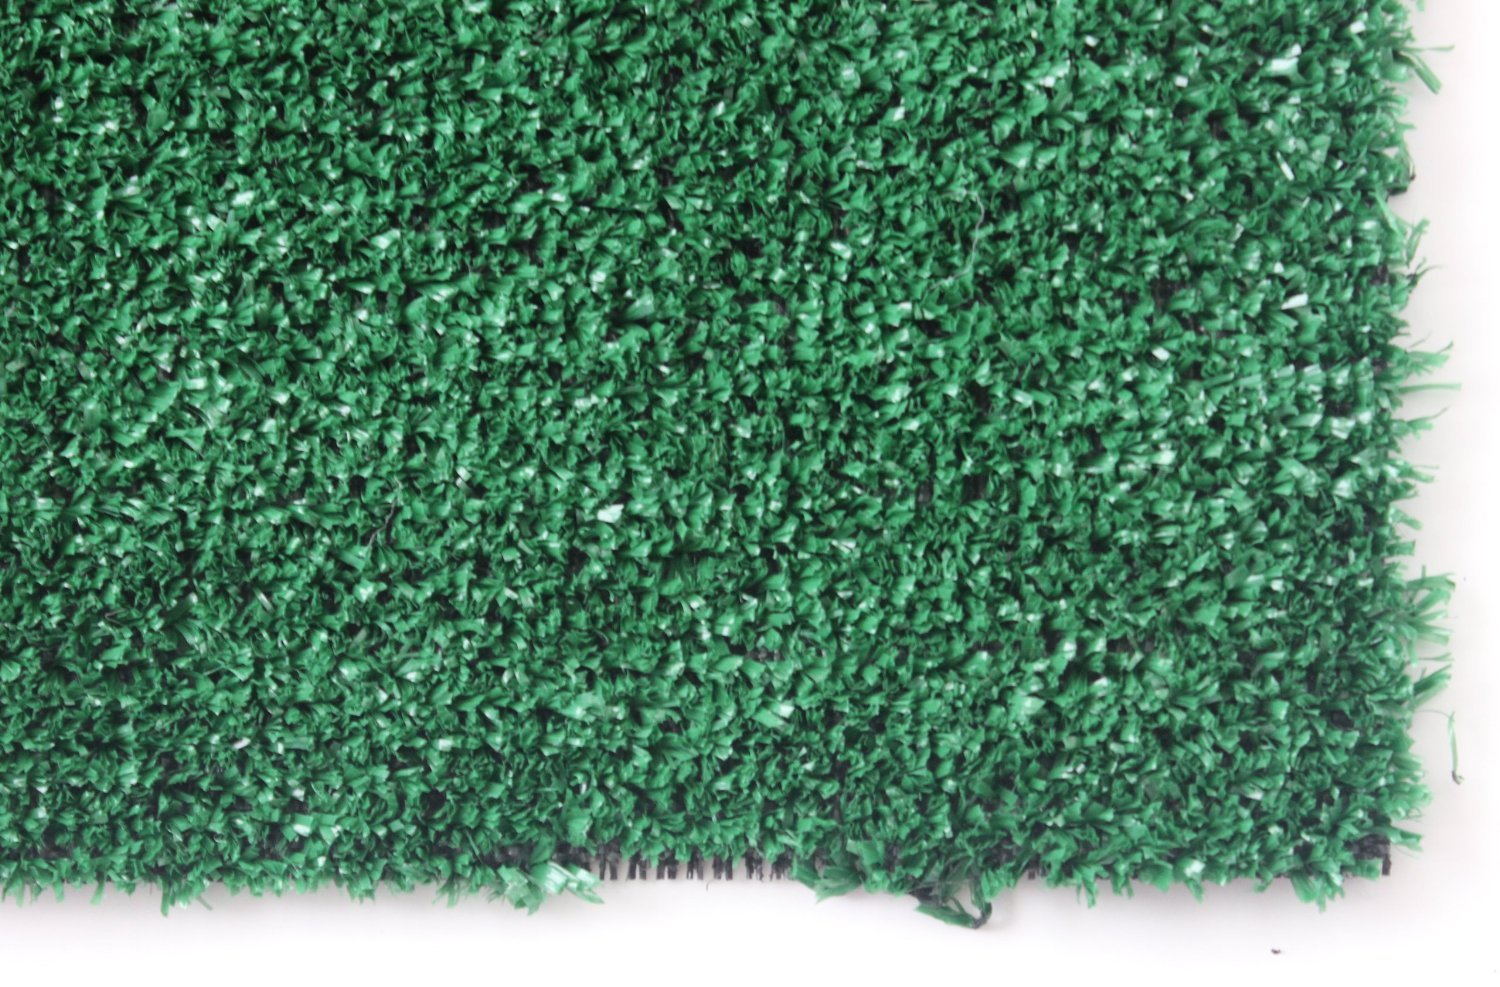 Amazon 12x12 ivy indooroutdoor artificial turf grass amazon 12x12 ivy indooroutdoor artificial turf grass carpet rug with a marine backing by beaulieu kitchen dining baanklon Choice Image